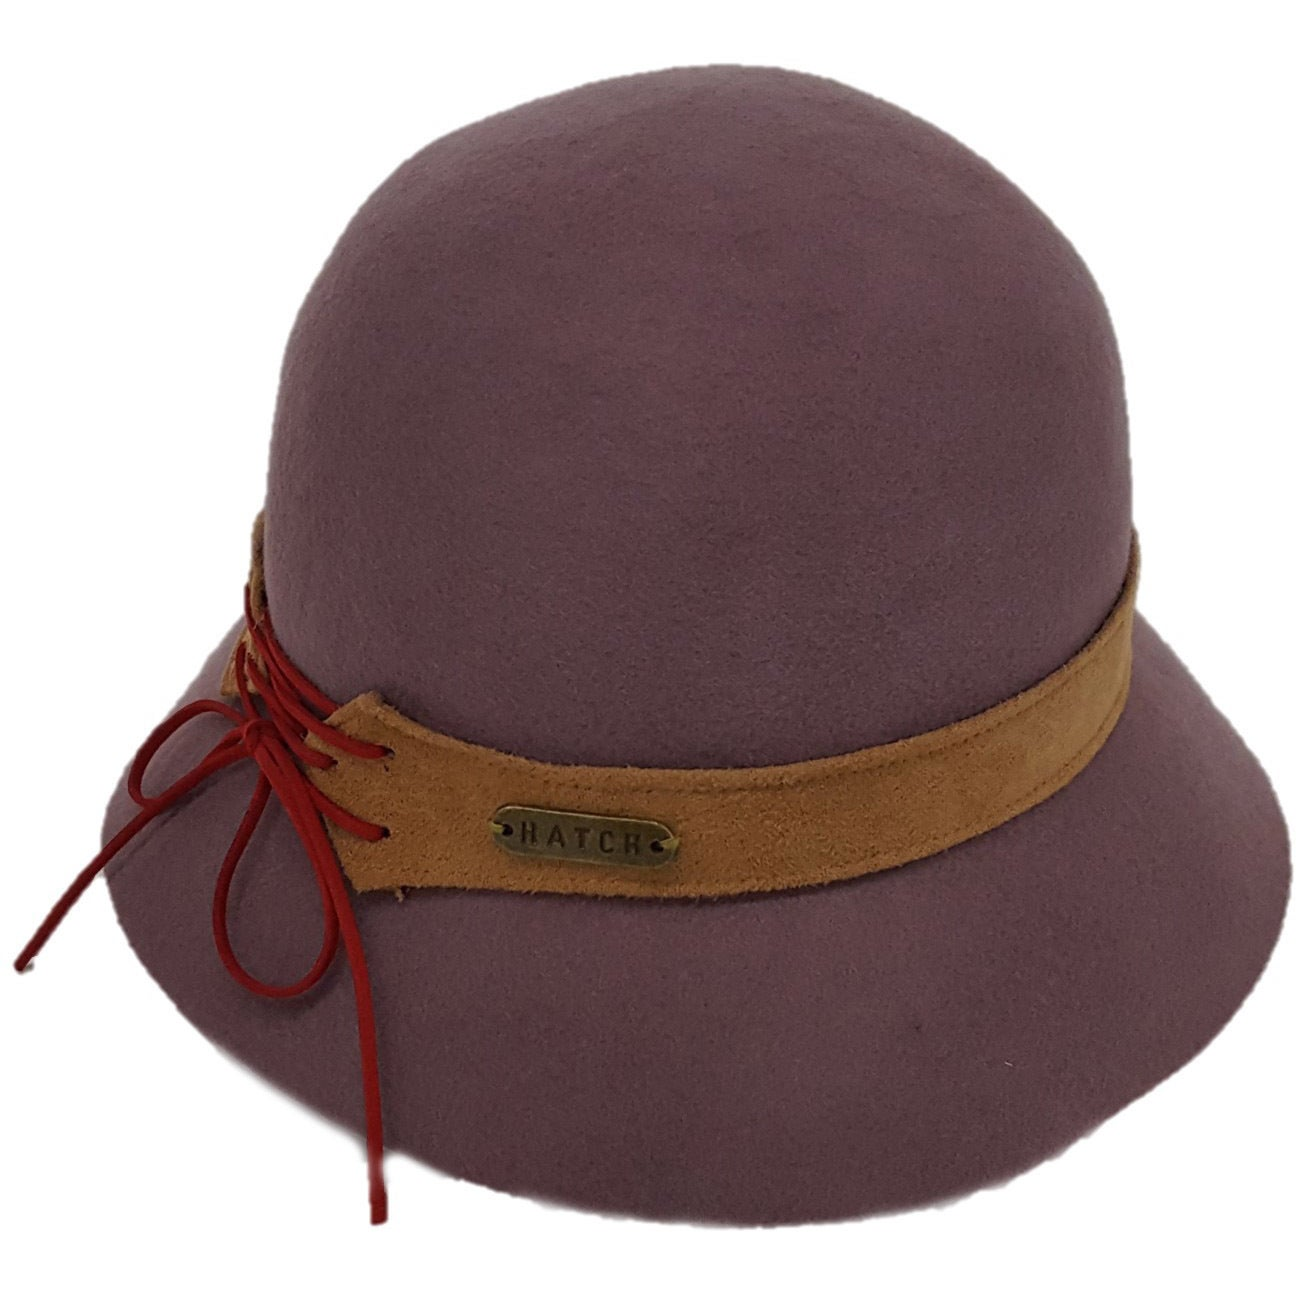 e6384603d90 Shop Hatch Laces Packable Wool Felt Cloche Hat - Free Shipping Today ...